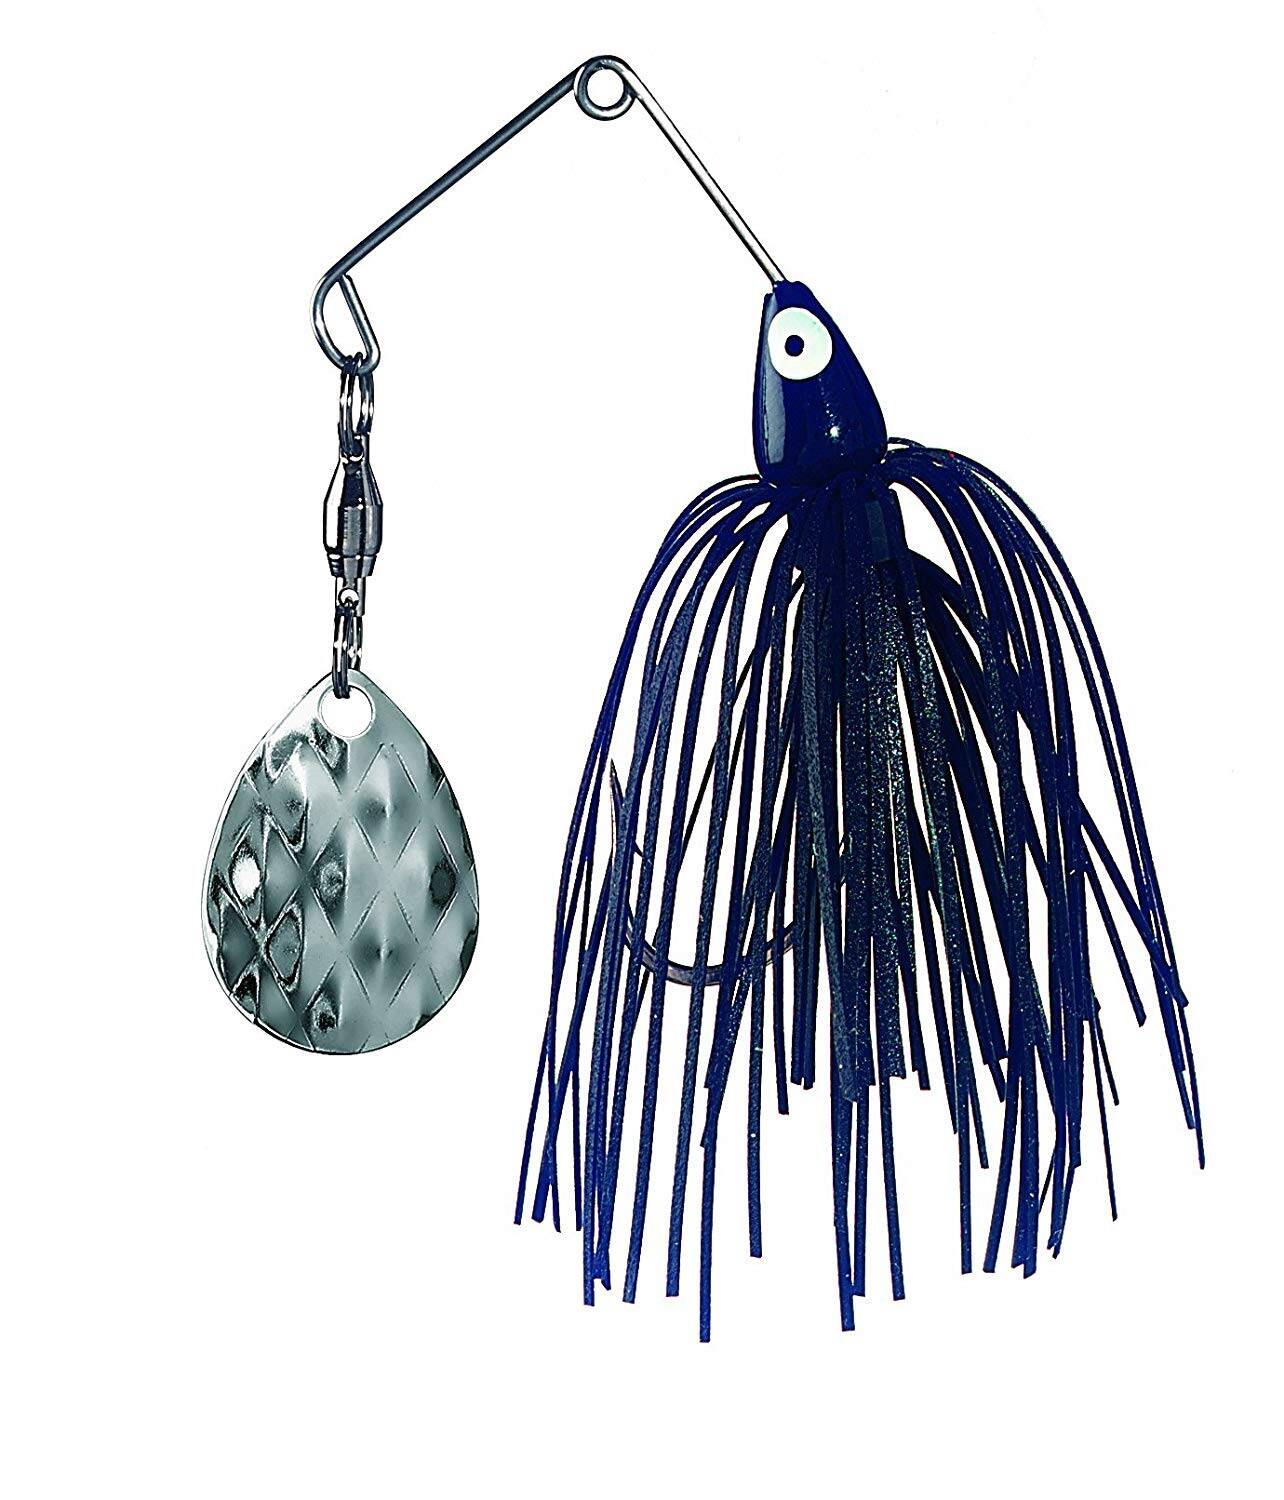 Strike King Mini-King Spinnerbait - Single Colorado Diamond Blade